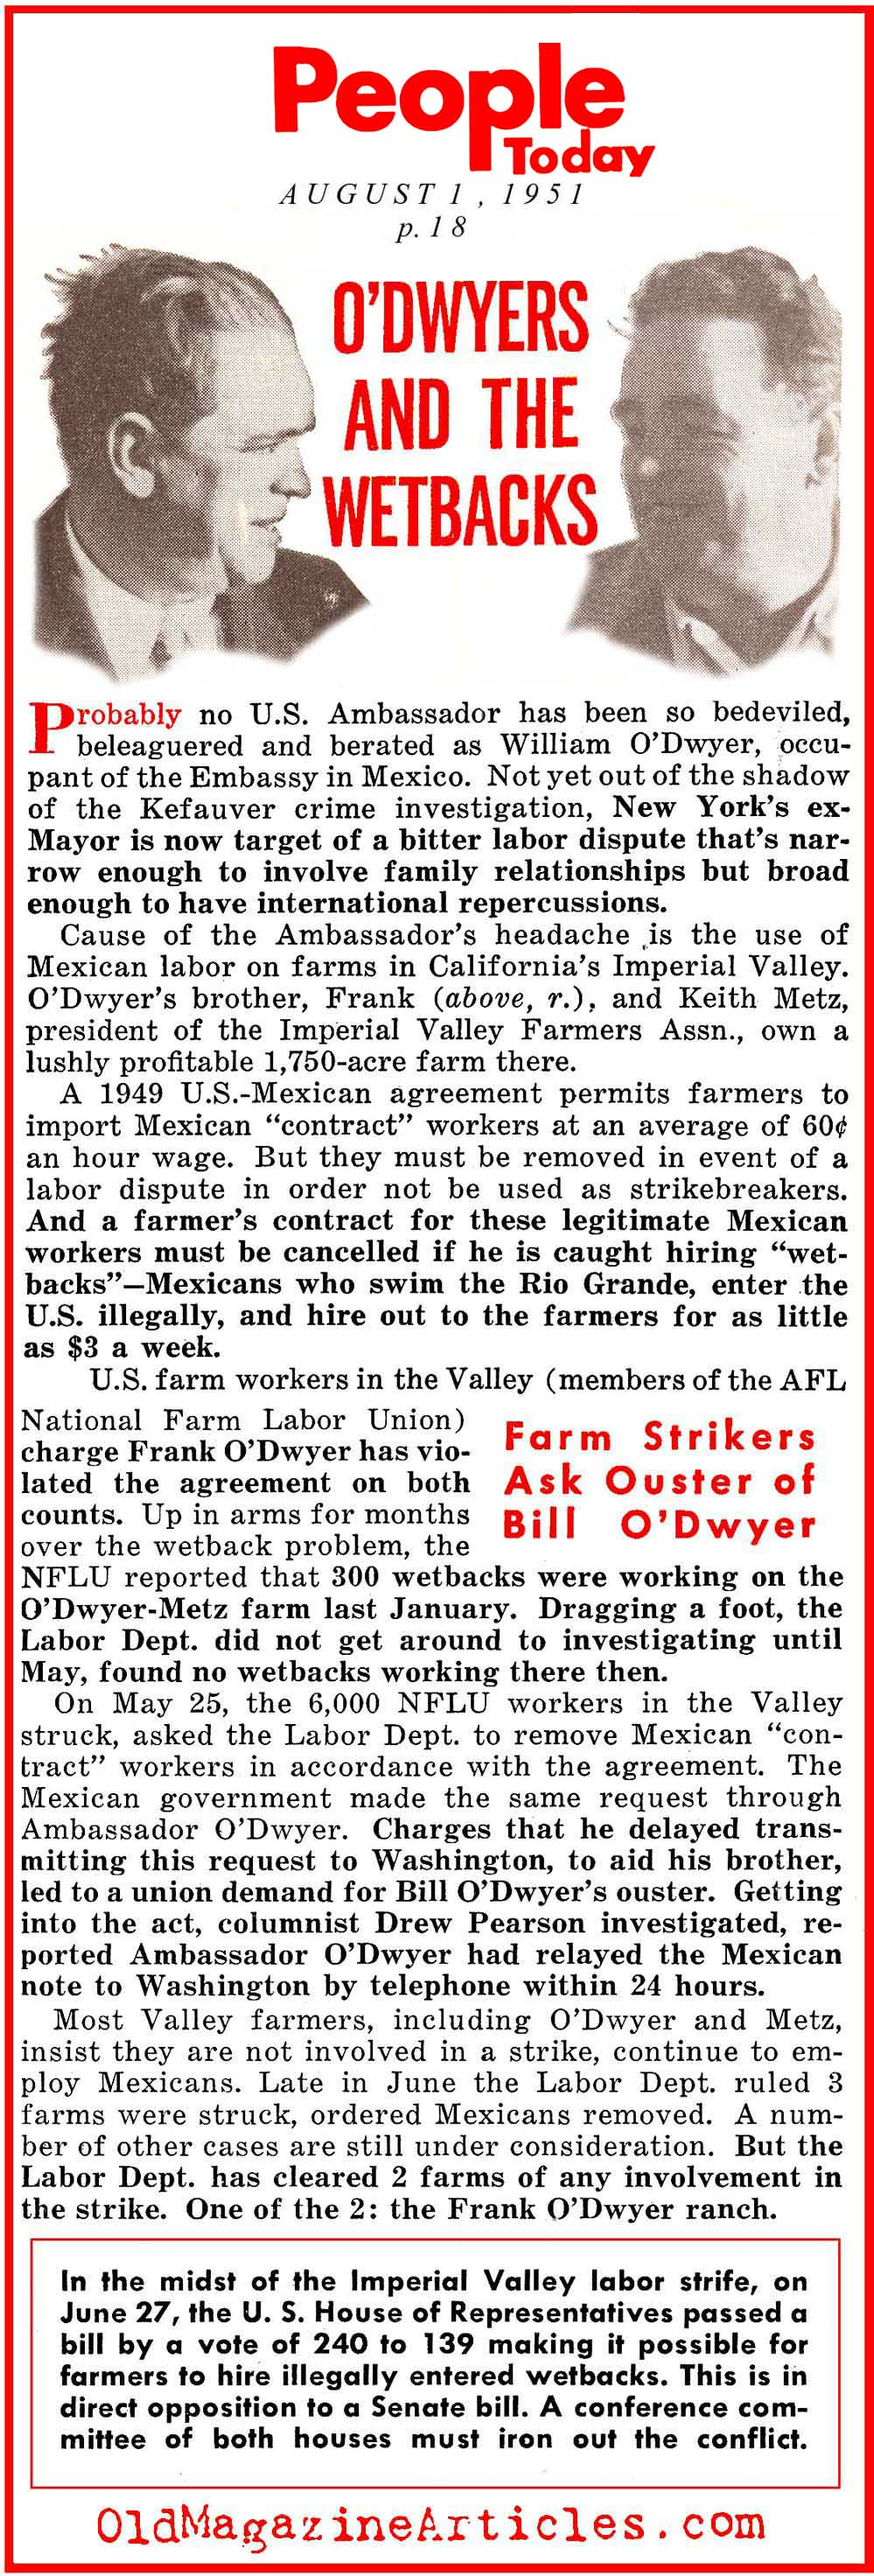 Congress OKs the Hiring of Illegal Farm Workers (People Today Magazine, 1951)